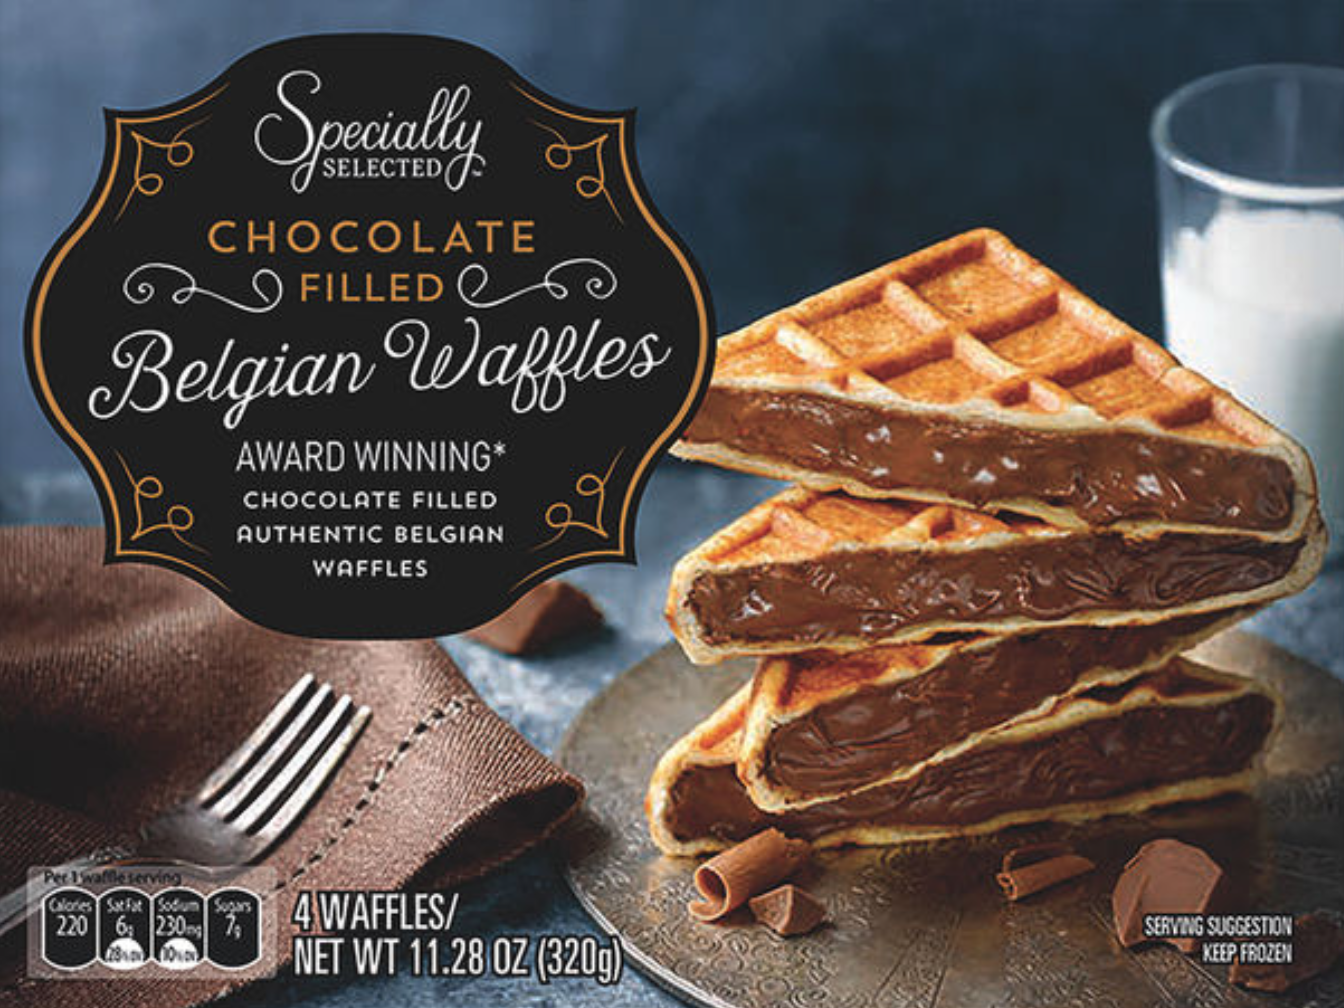 Aldi Is Selling Chocolate-Filled Belgian Waffles and Breakfast Will Never Be the Same